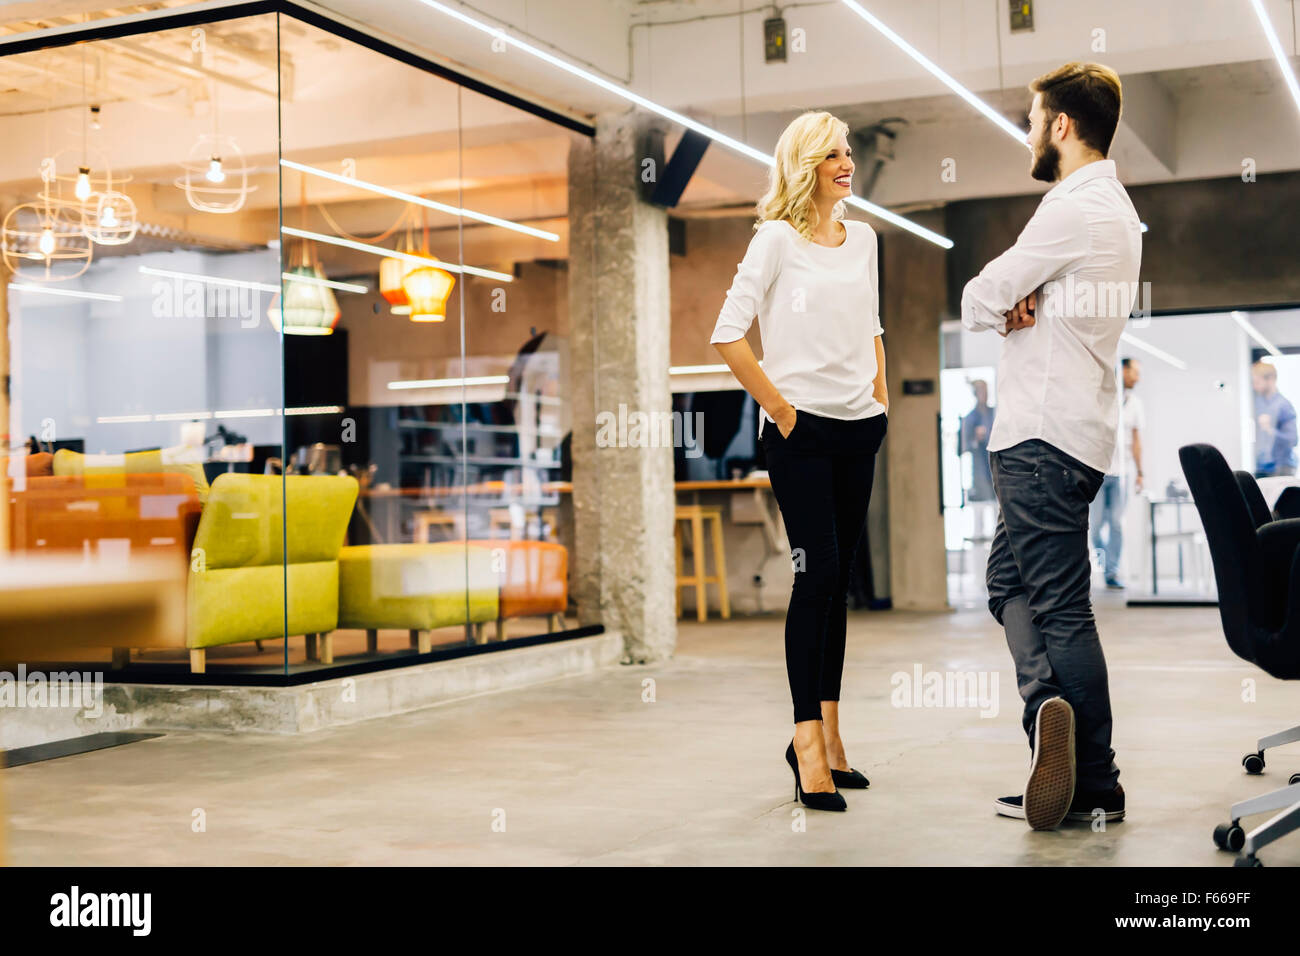 Intelligent deux coworkers talking in a modern office Photo Stock